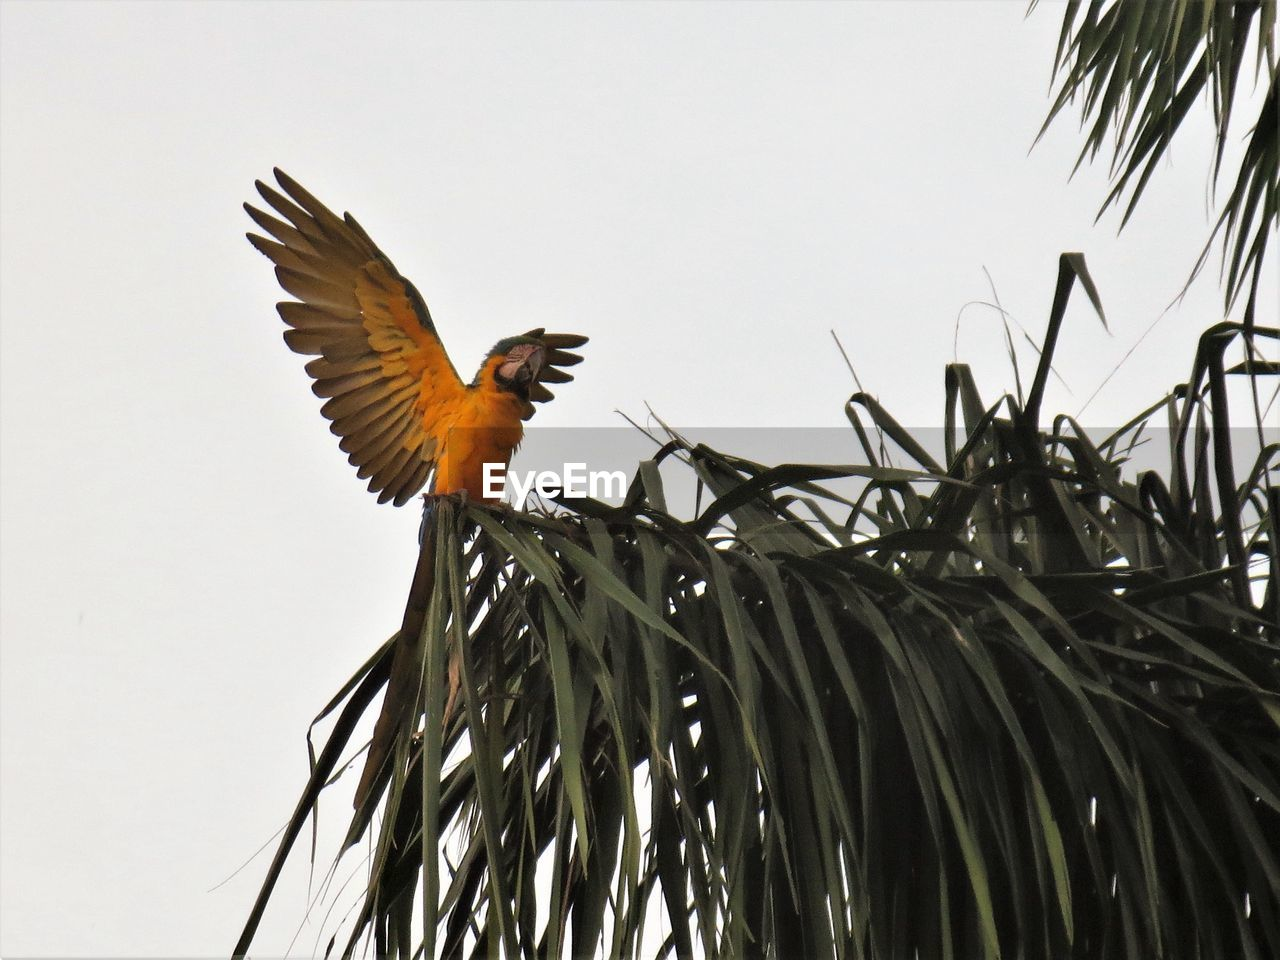 animals in the wild, animal wildlife, bird, animal themes, animal, vertebrate, one animal, flying, low angle view, spread wings, sky, no people, clear sky, nature, tree, plant, day, leaf, branch, outdoors, palm leaf